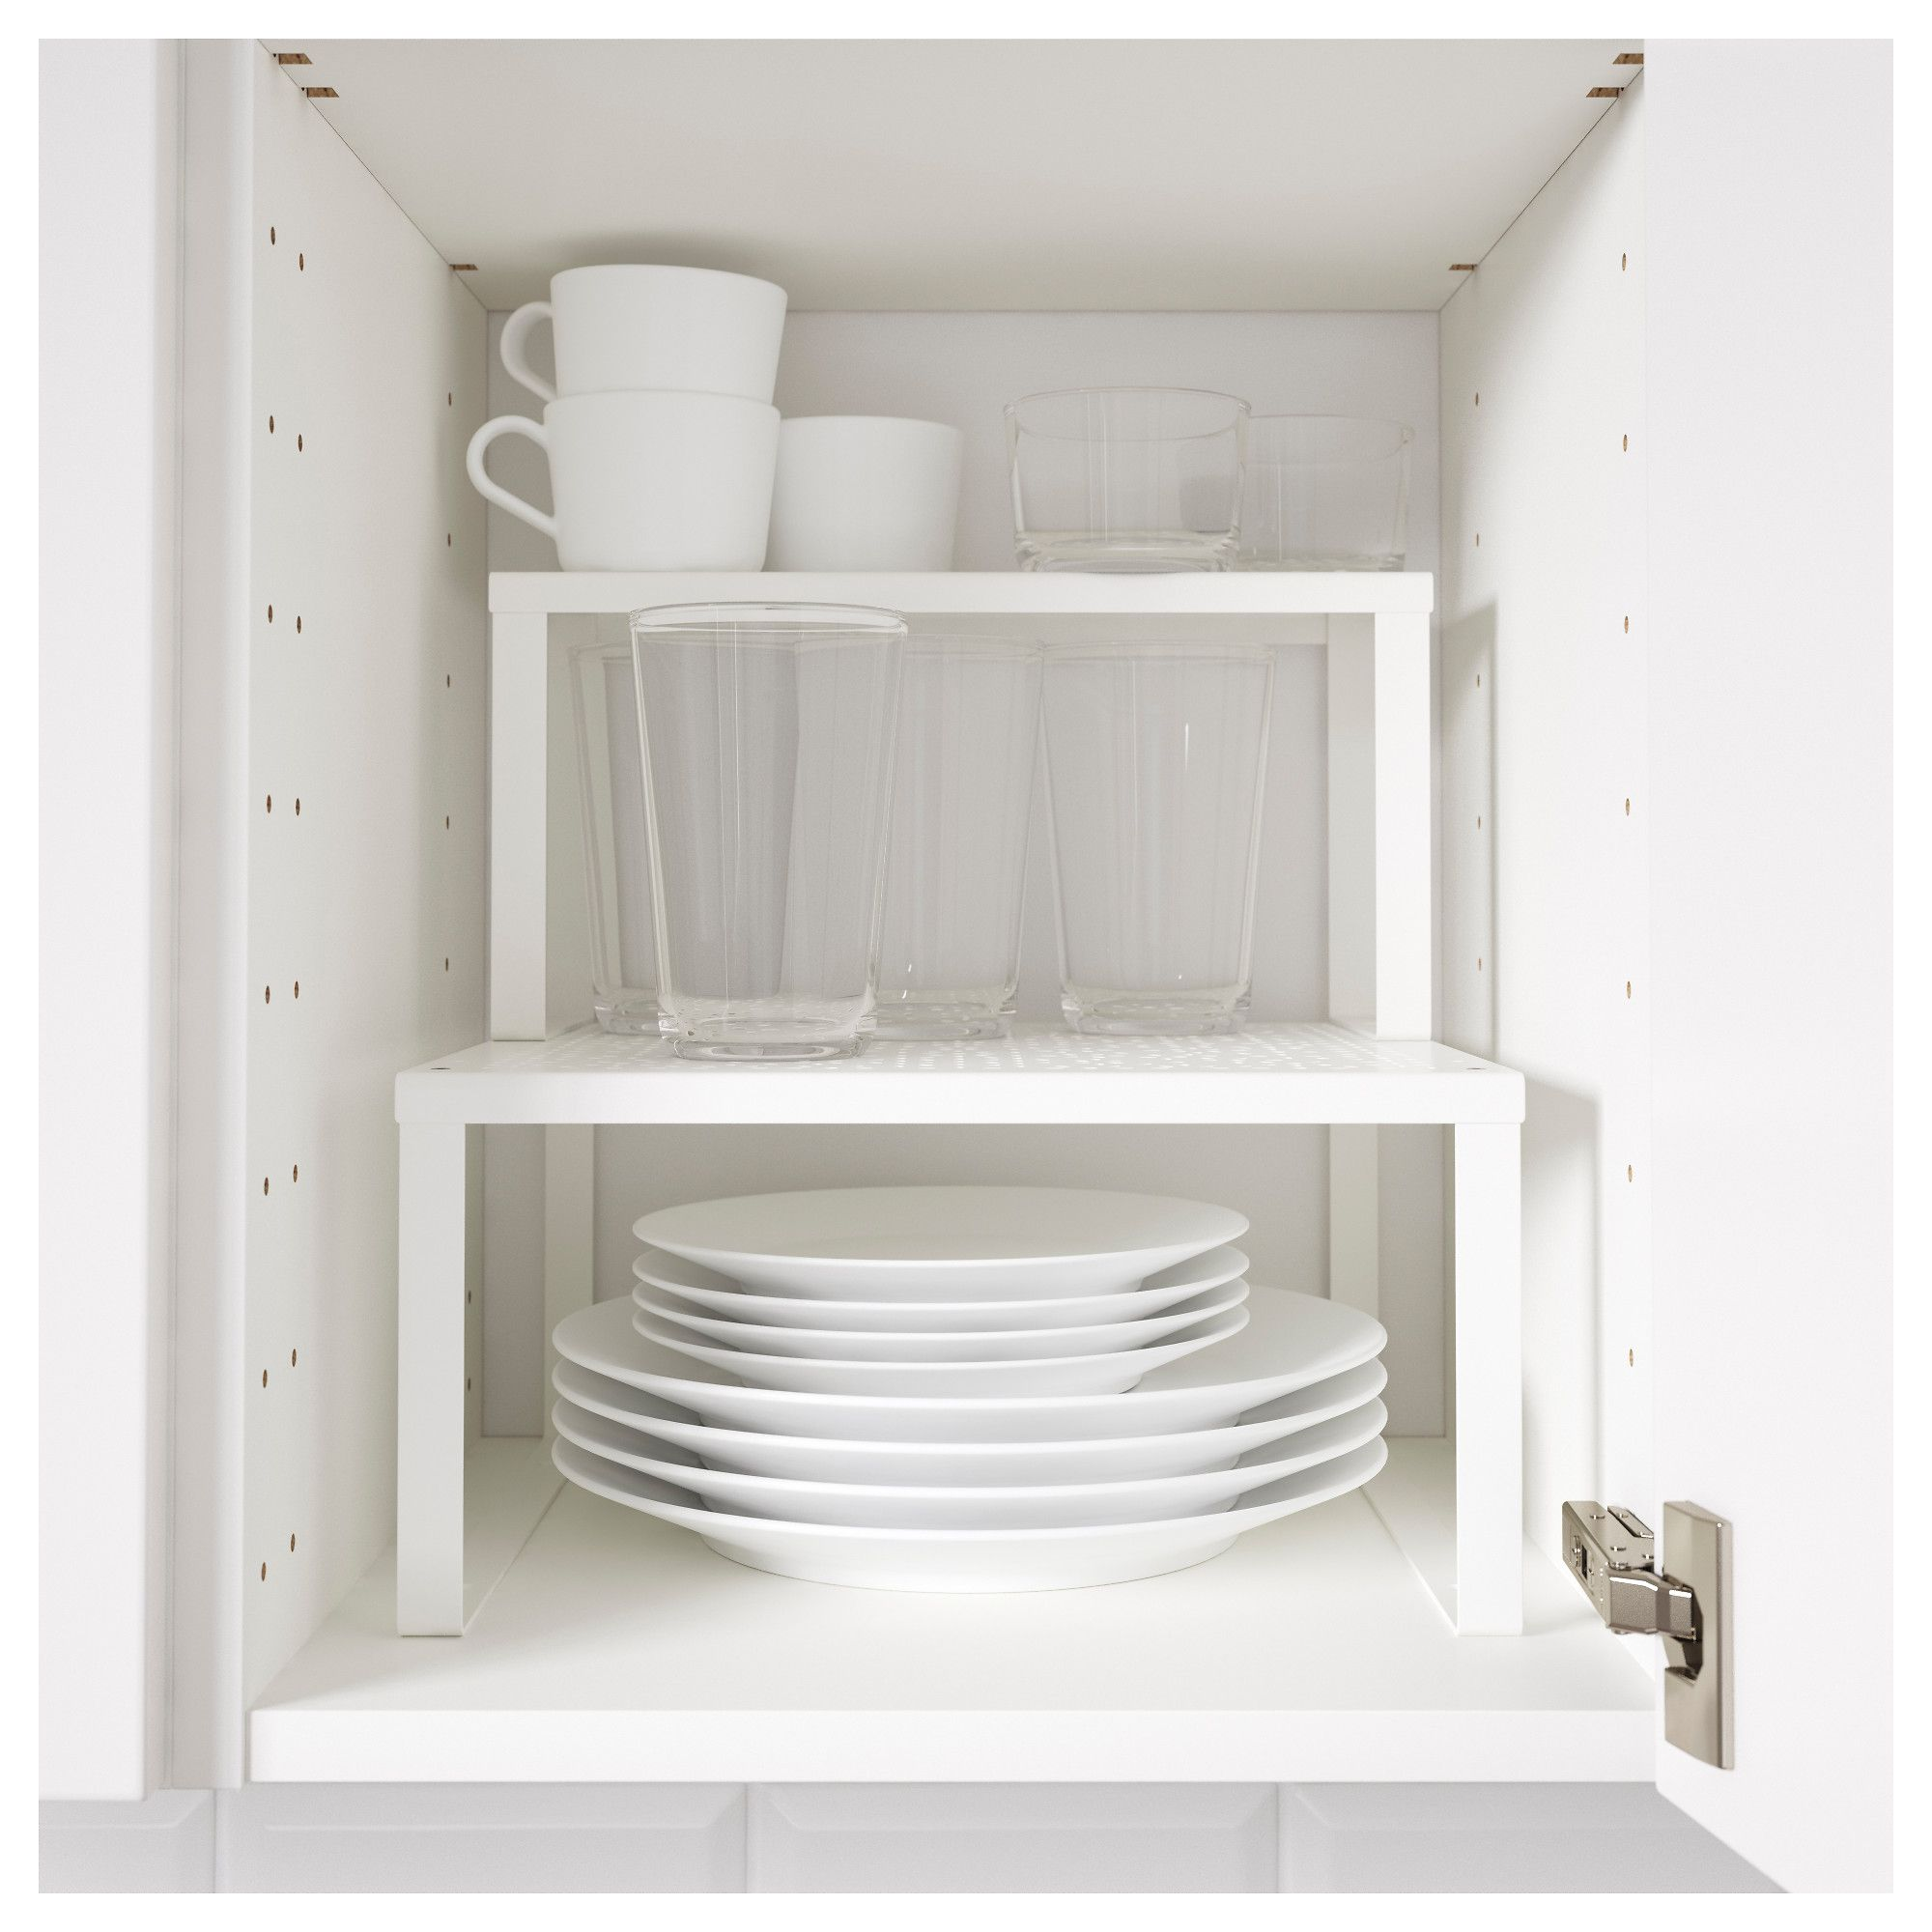 Küchen Organizer Ikea A Happier Kitchen With 100 Or Less The Ultimate Ikea Cabinet